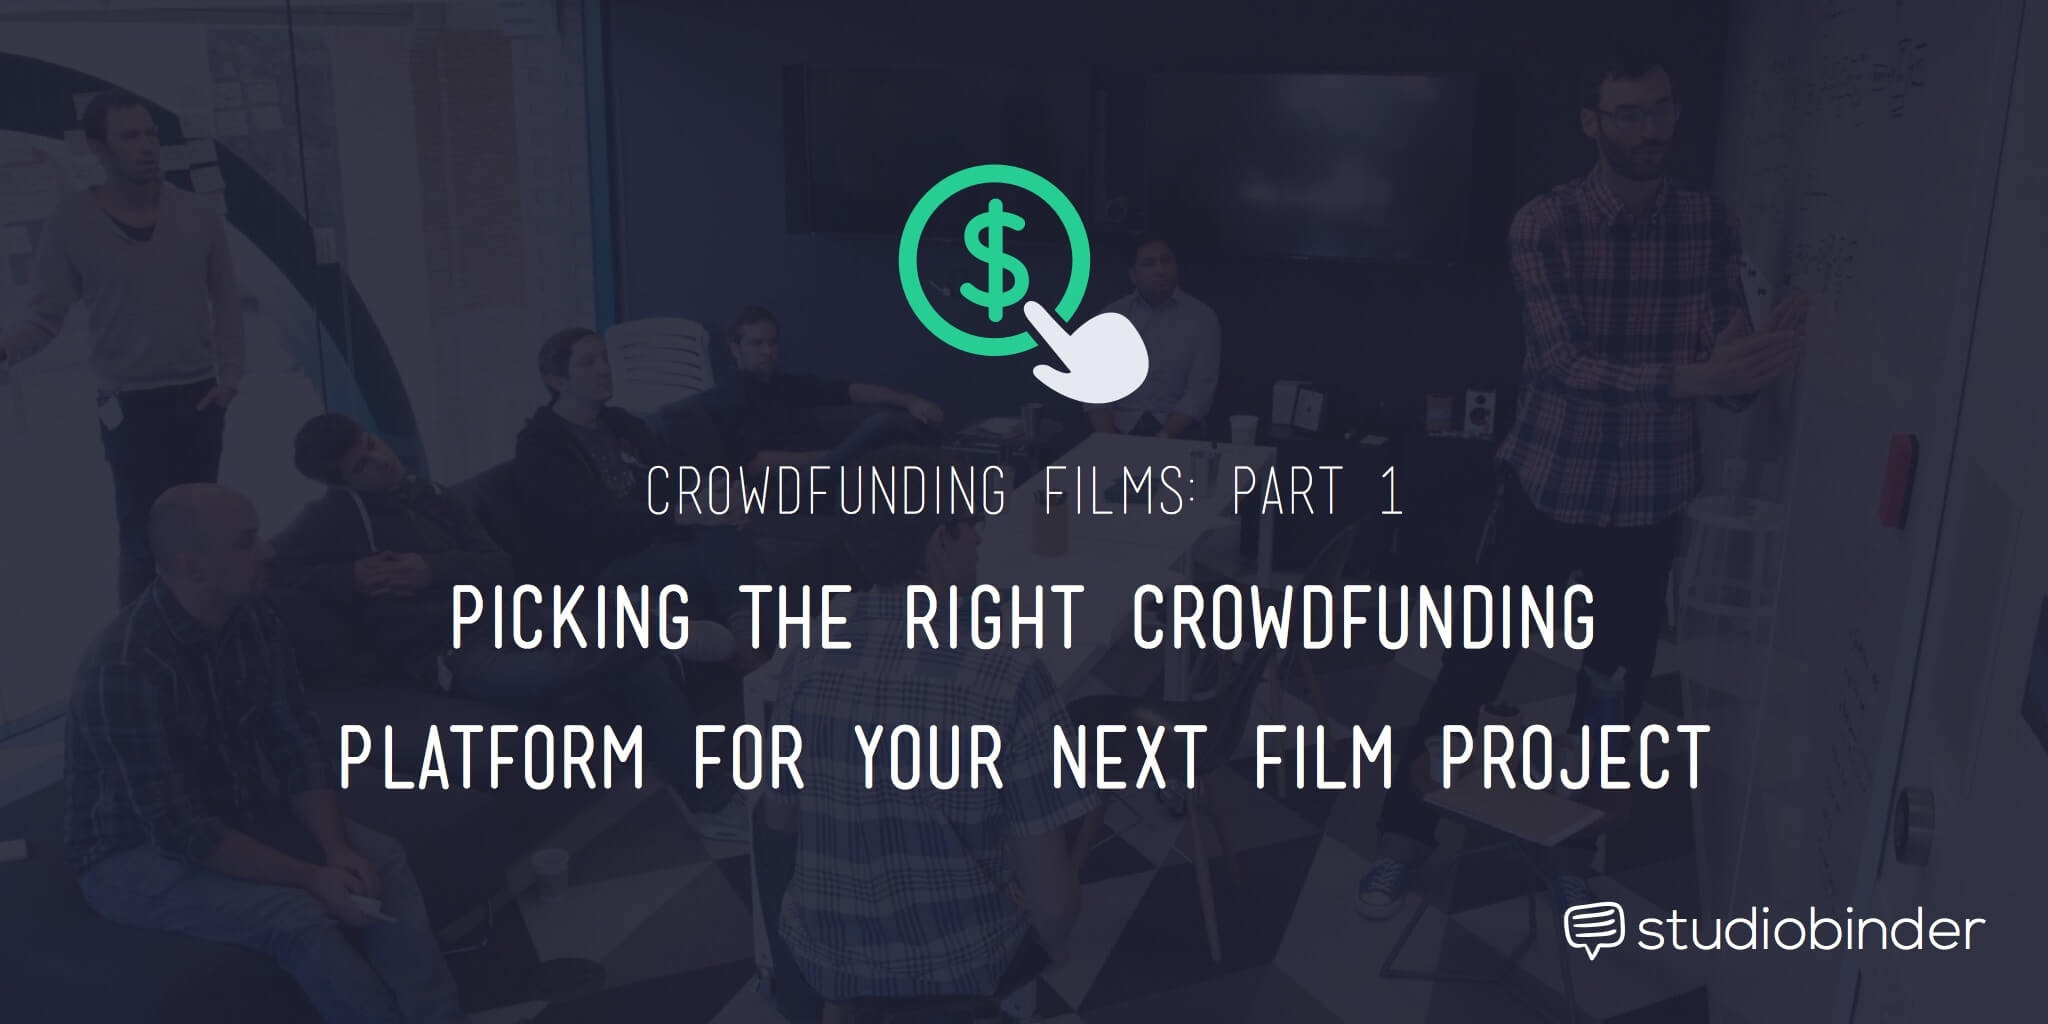 Crowdfunding Film Part 1 - Picking the Right Platform for your next film project - StudioBinder